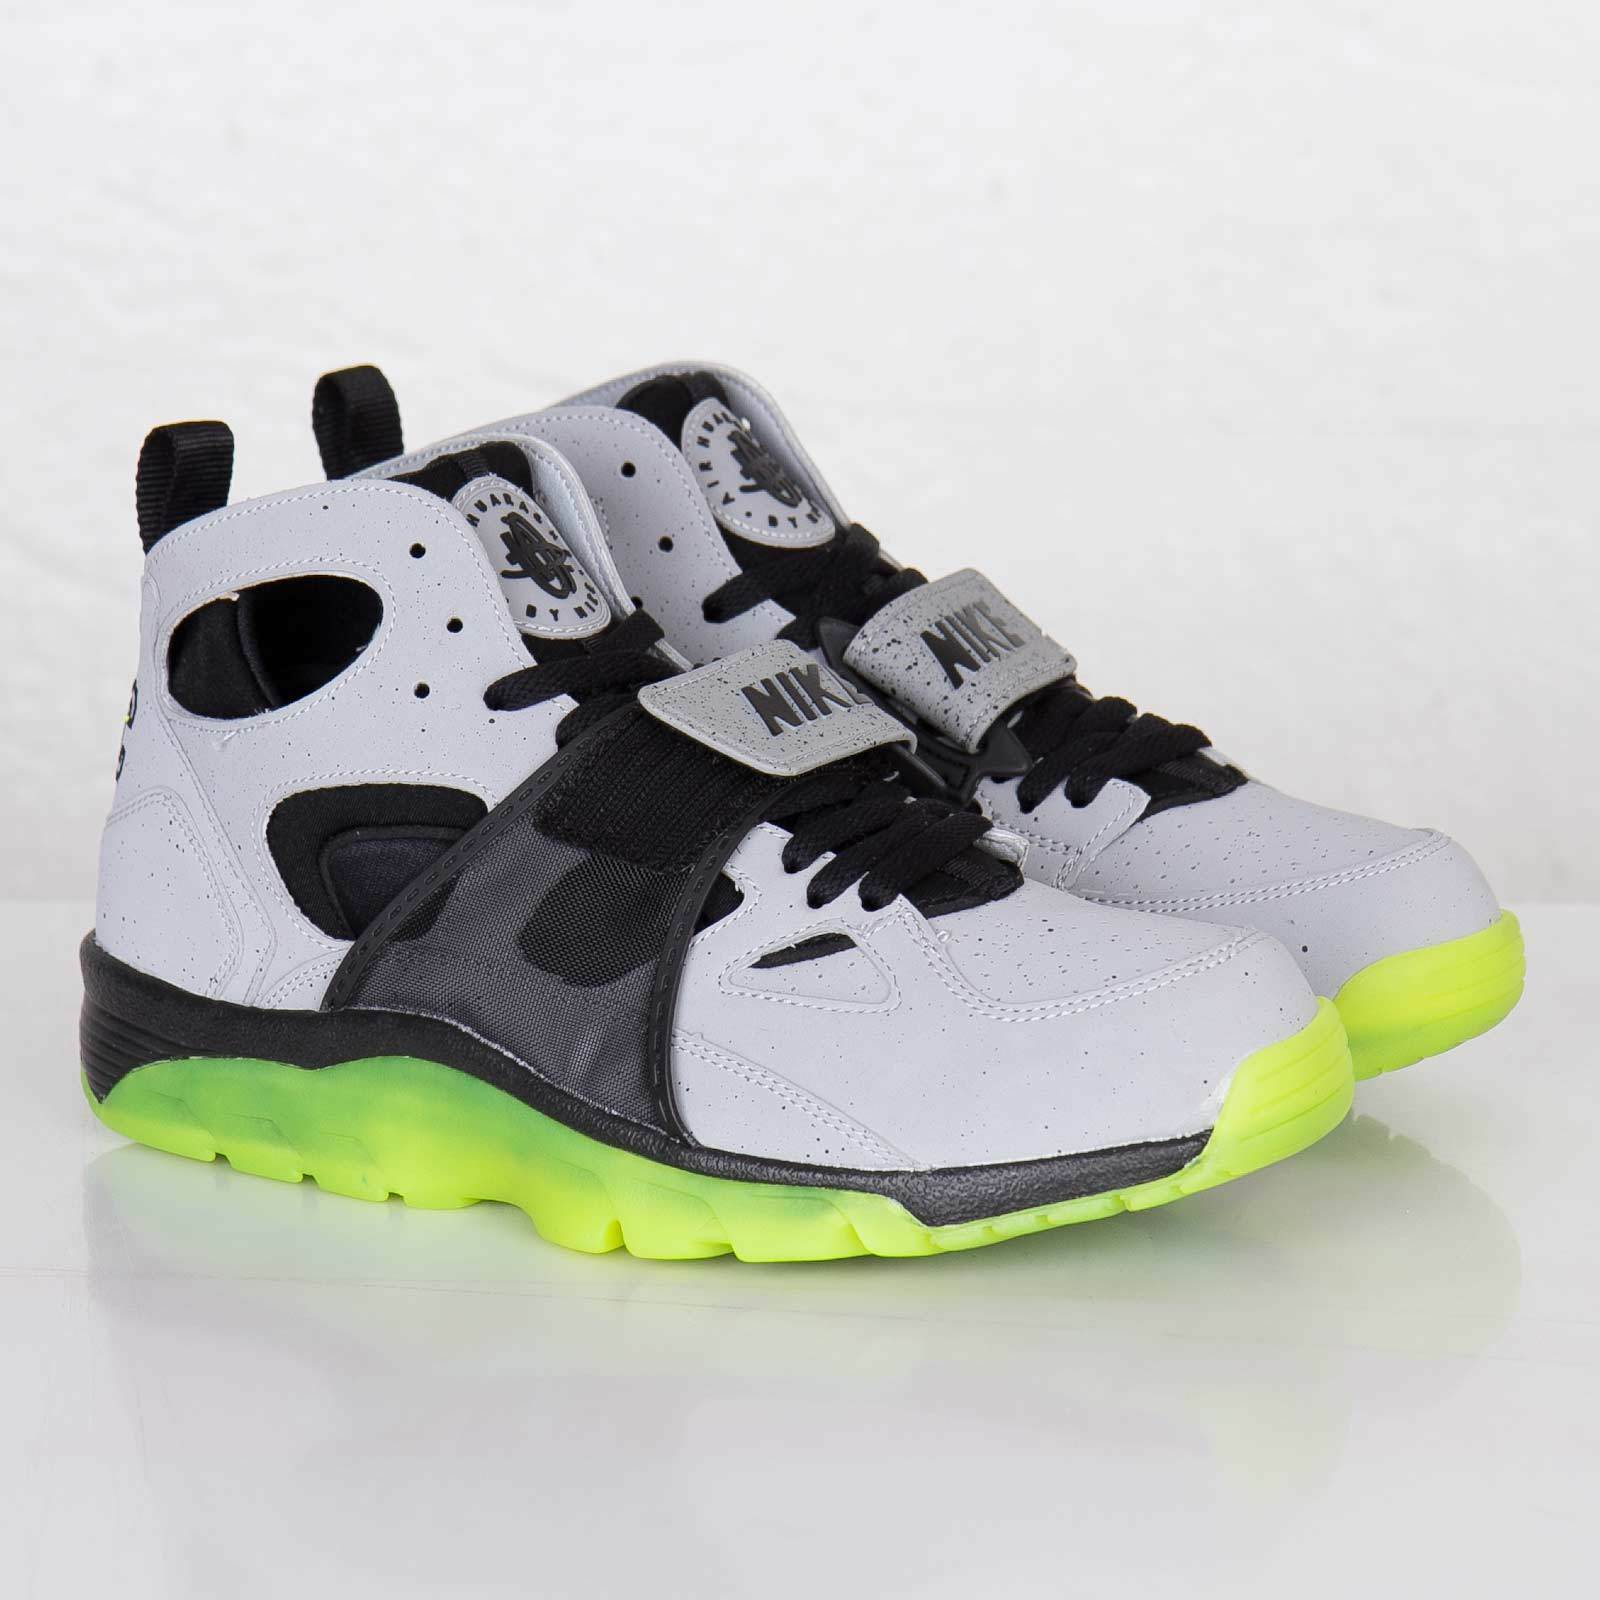 Nike MEN'S Air Trainer Huarache QS CEMENT NYC NEW YORK CITY SIZE 10.5 DEADSTOCK